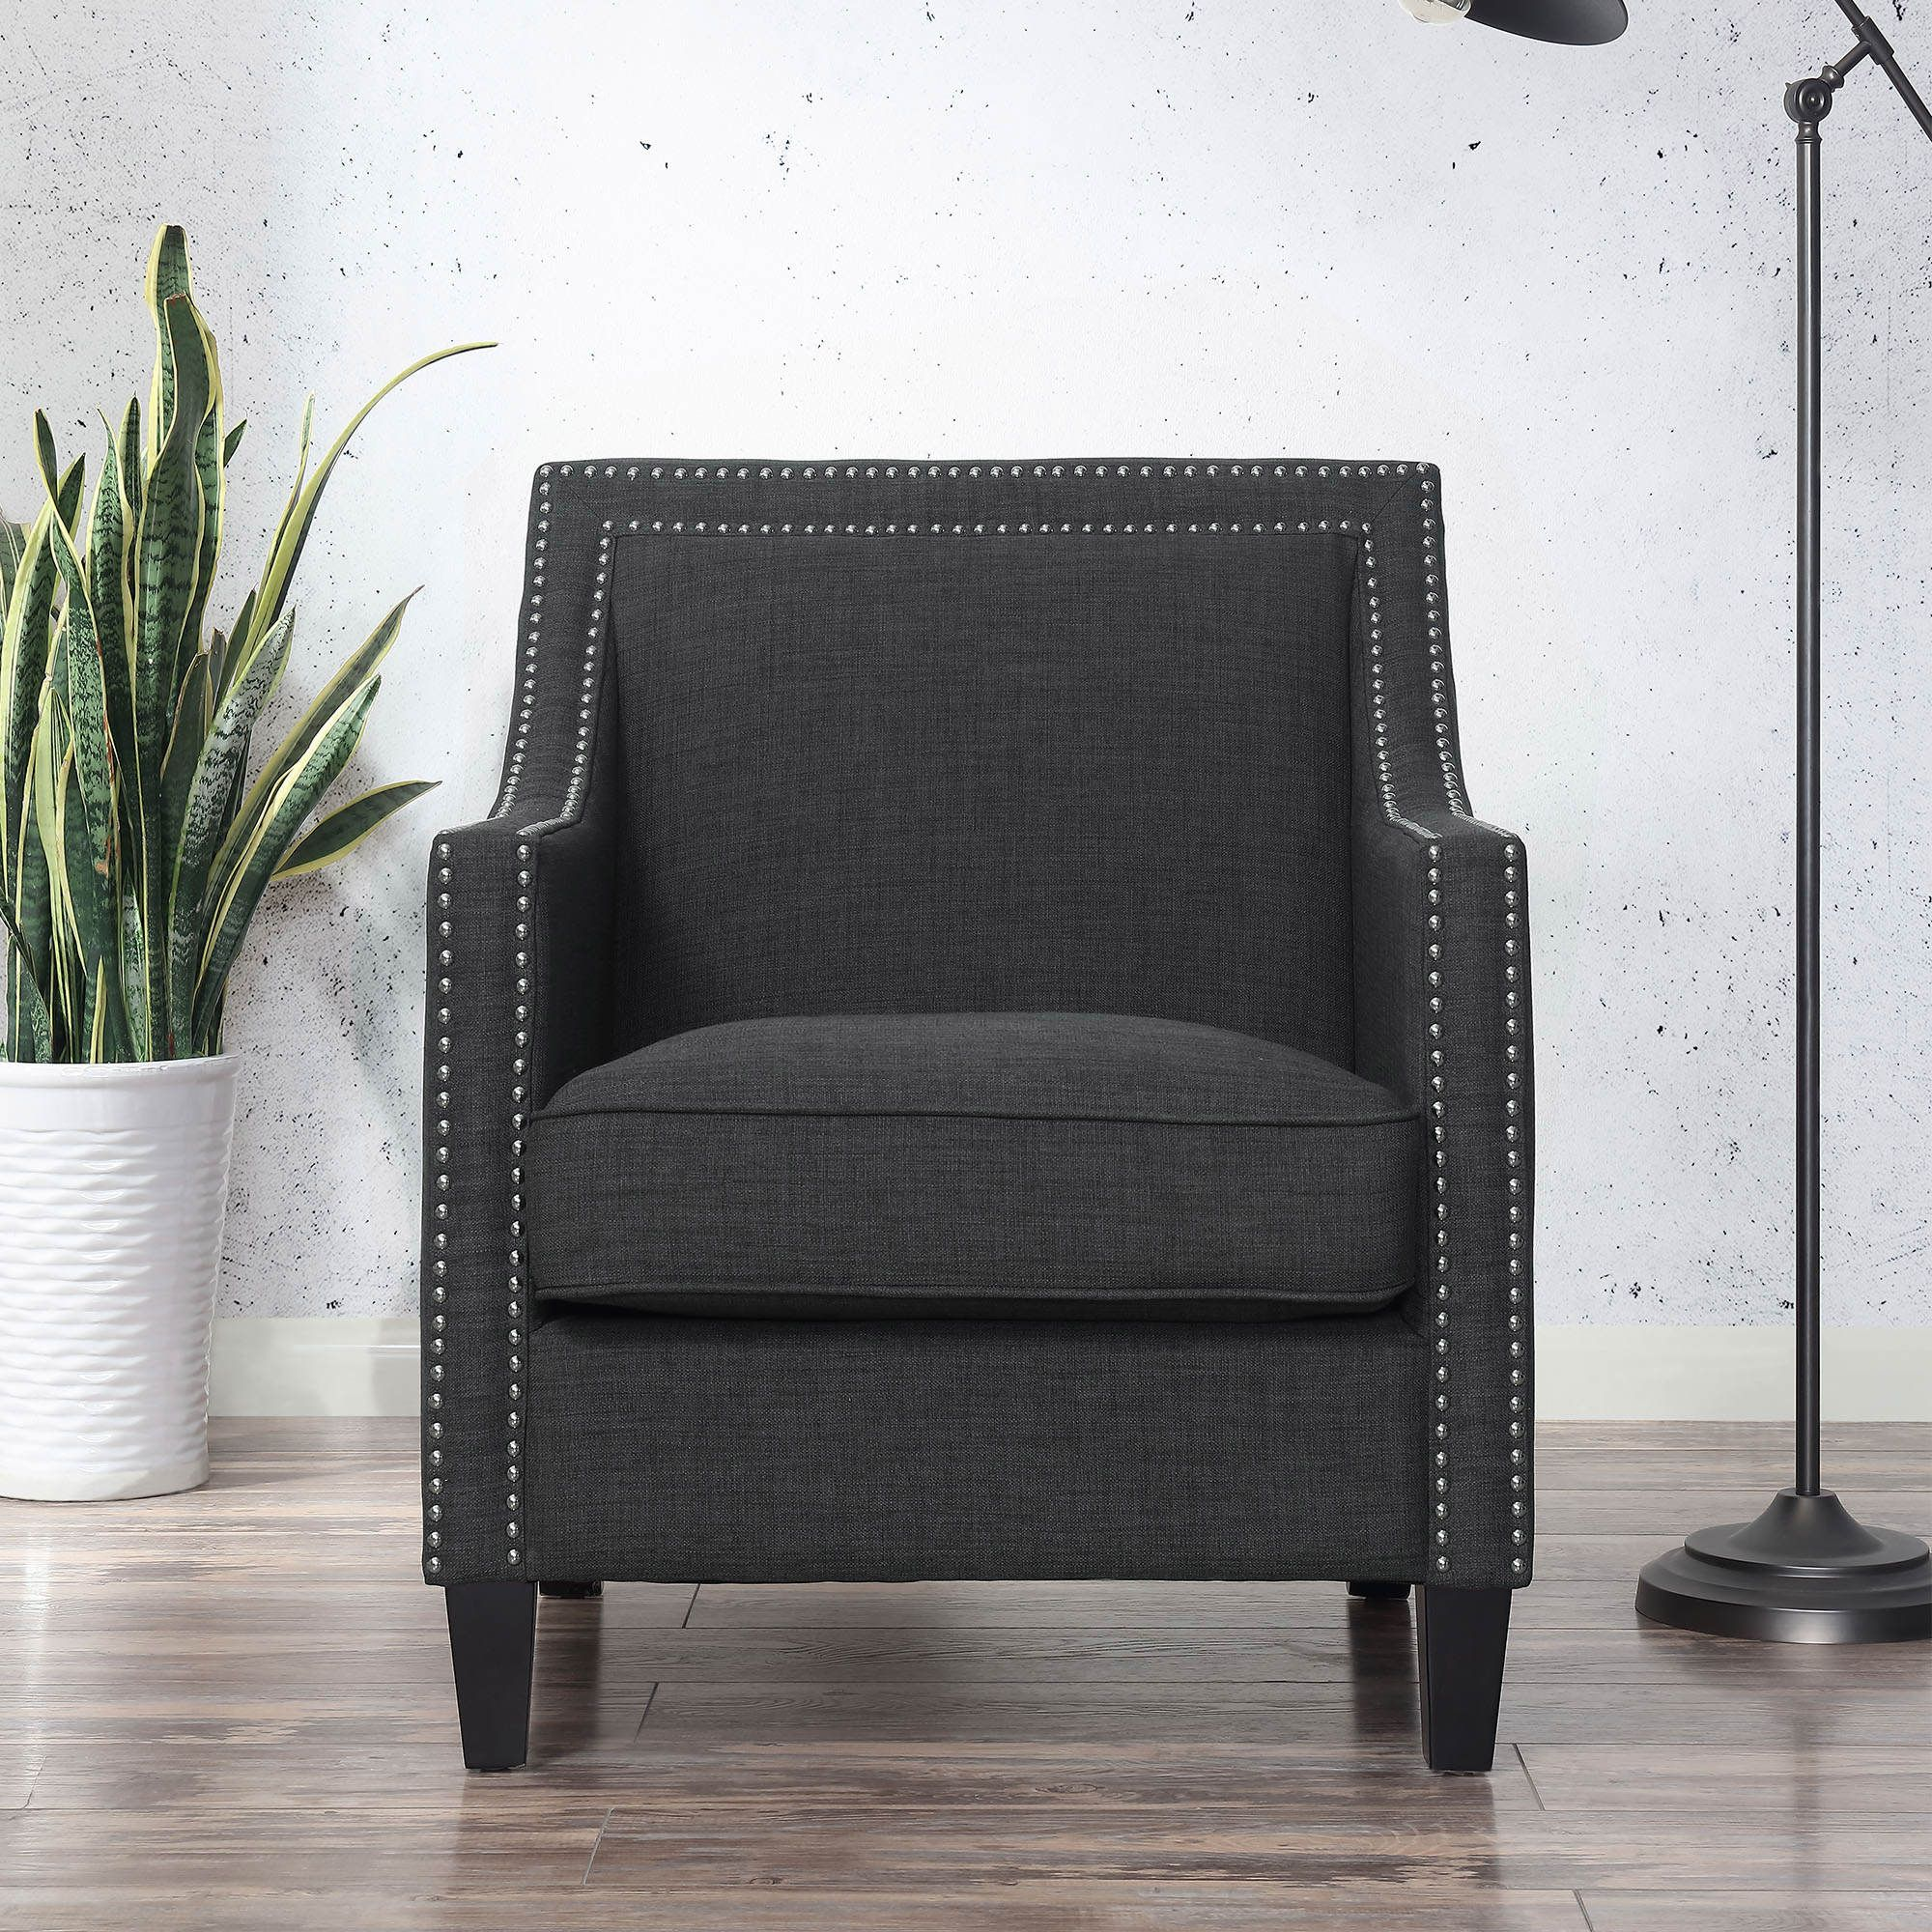 Erika Accent Chair Bjs: ProductErika Accent Chair Item